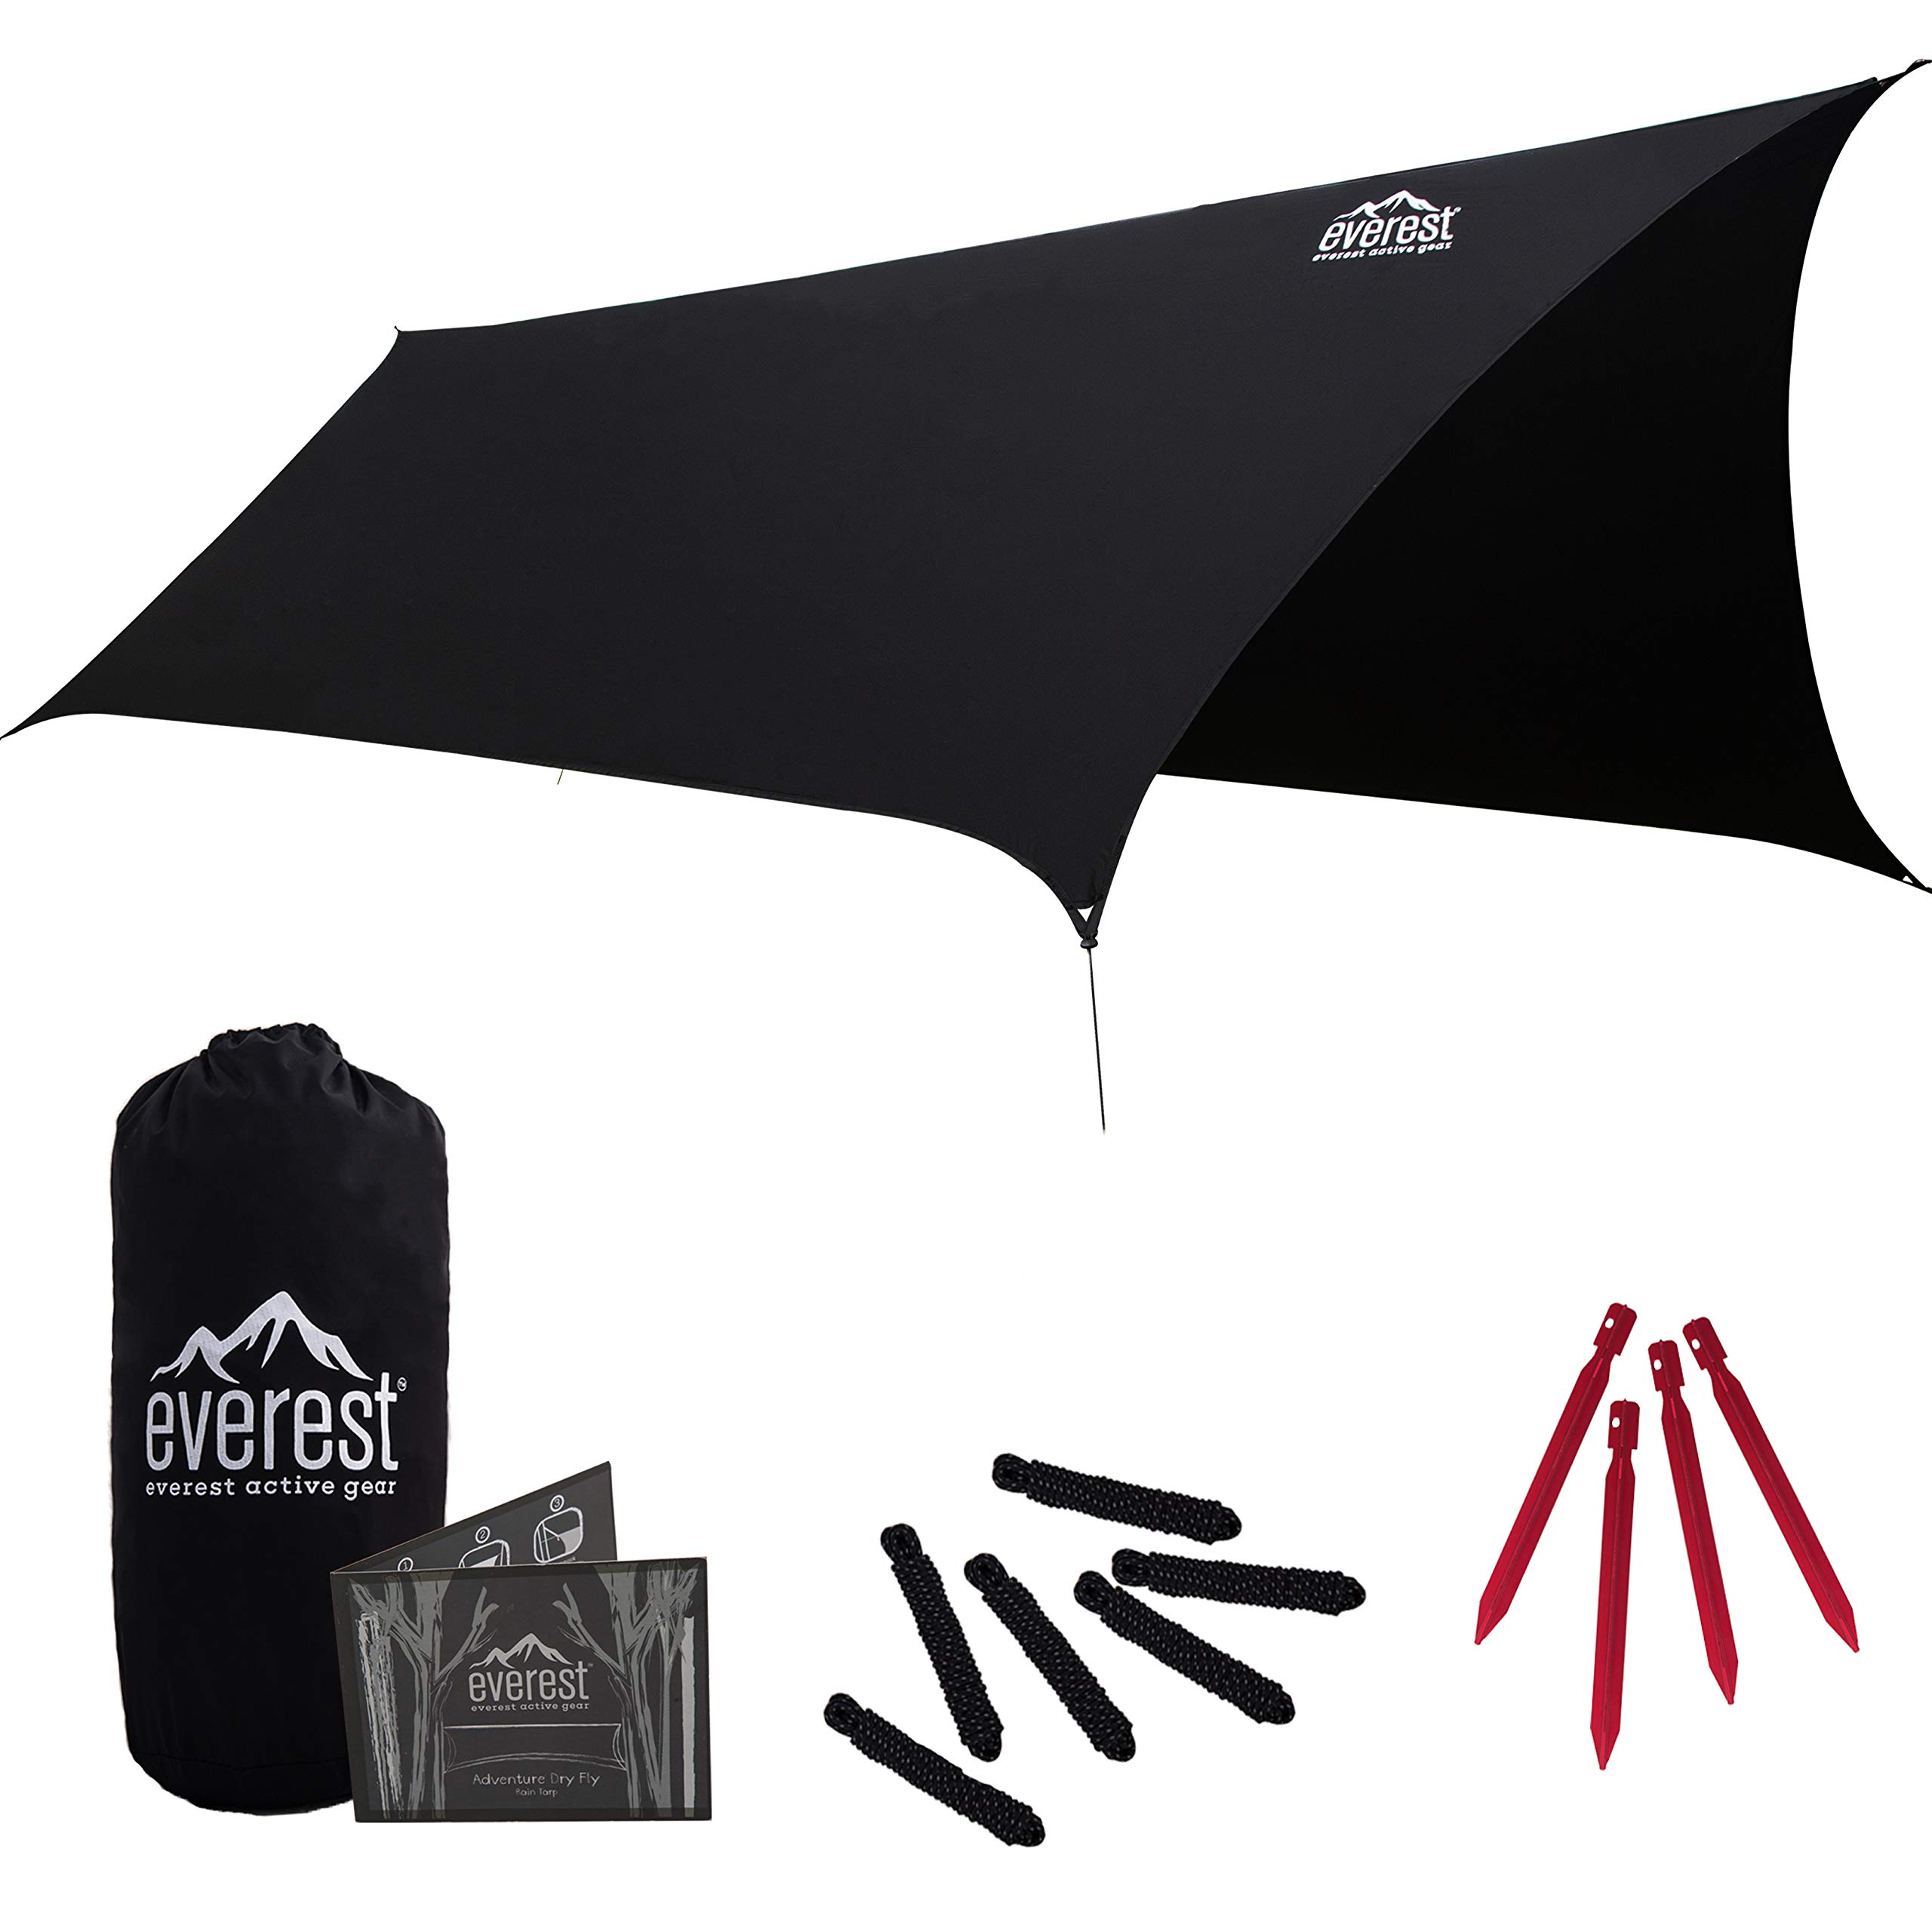 Everest Hammock Rain Fly | Waterproof Outdoor Tarp | Perfect for Camping, Backpacking, Tents, Hammocks, and More | Ripstop Nylon | Lightweight Aluminum Stakes Included - Black by everest active gear